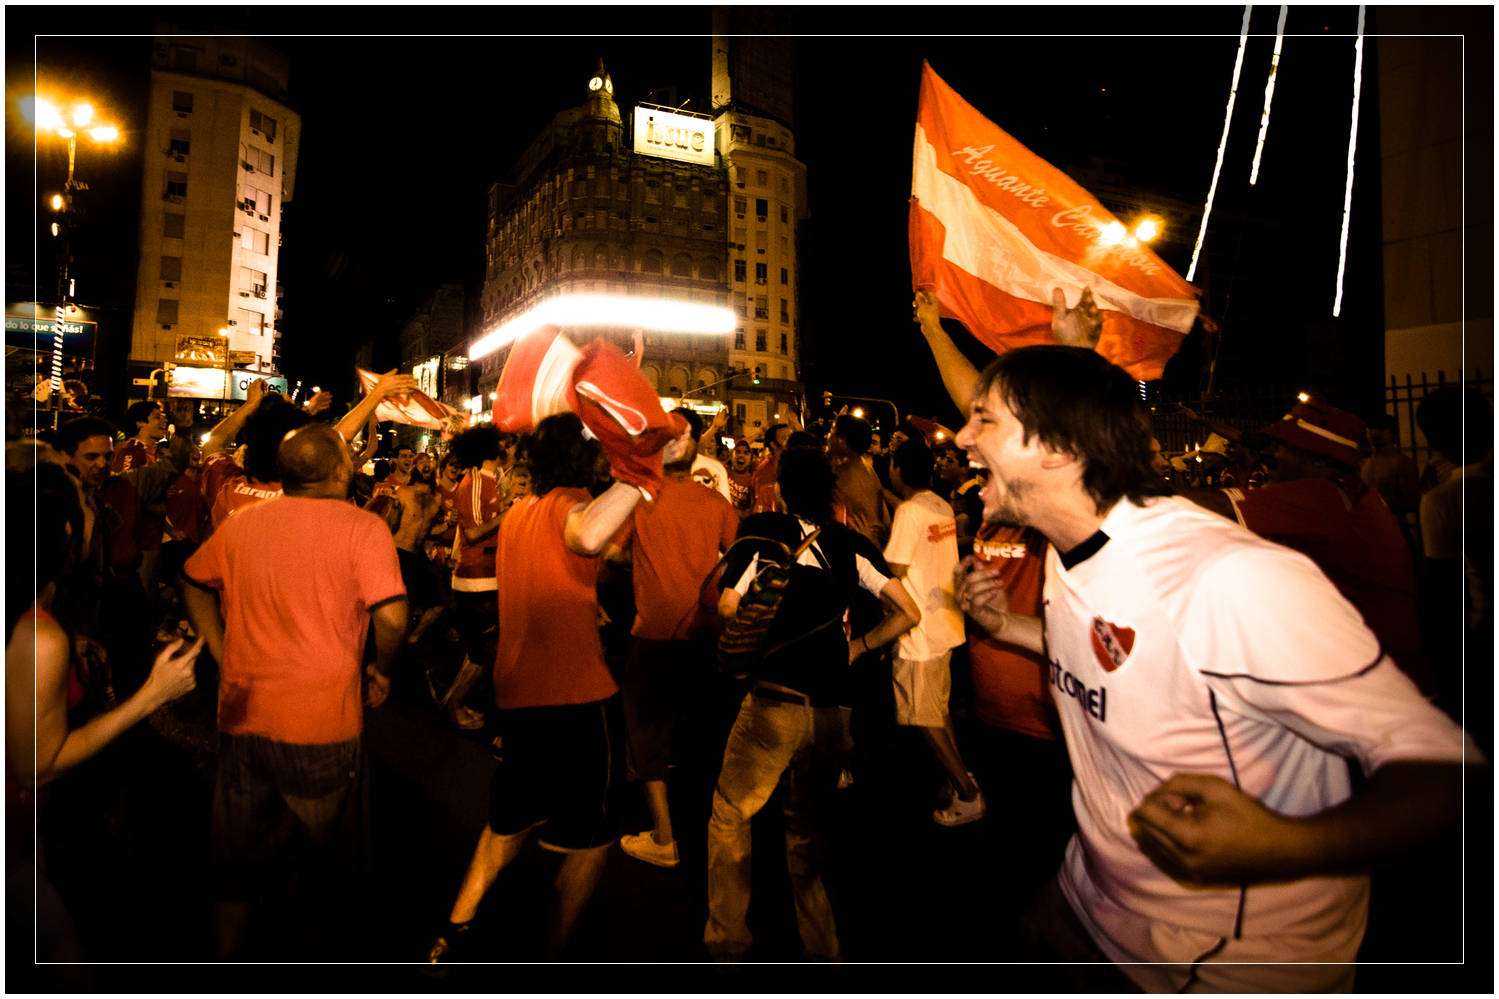 Independiente Victory Celebration, Buenos Aires - Argentina (c) Dustin Main